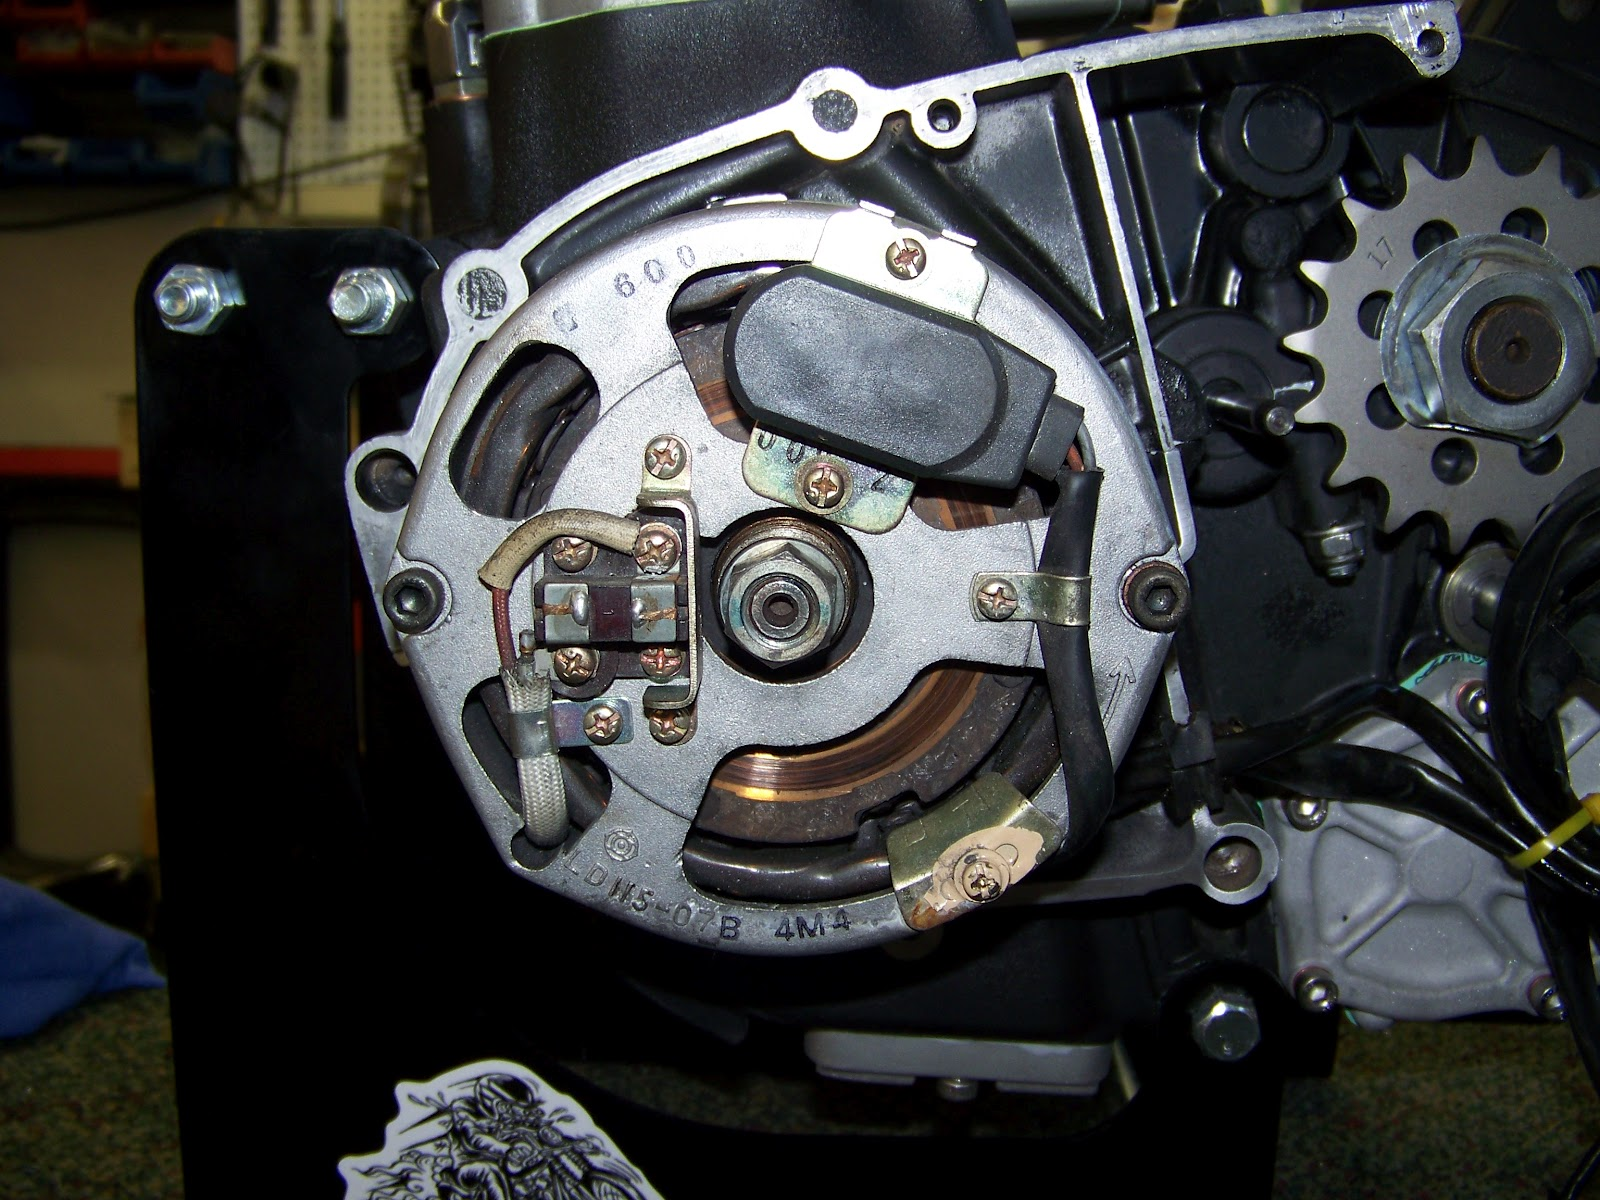 How To Install Your Hughs Handbuilt Pma System On Xs650 Motorcycle Tail Light Wiring Diagram As Well Yamaha Now Simplify A Few Things Down The Road Rotate Engine Tdc Thats T Mark Timing Tab Use Ratchet And 17mm Socket Do This